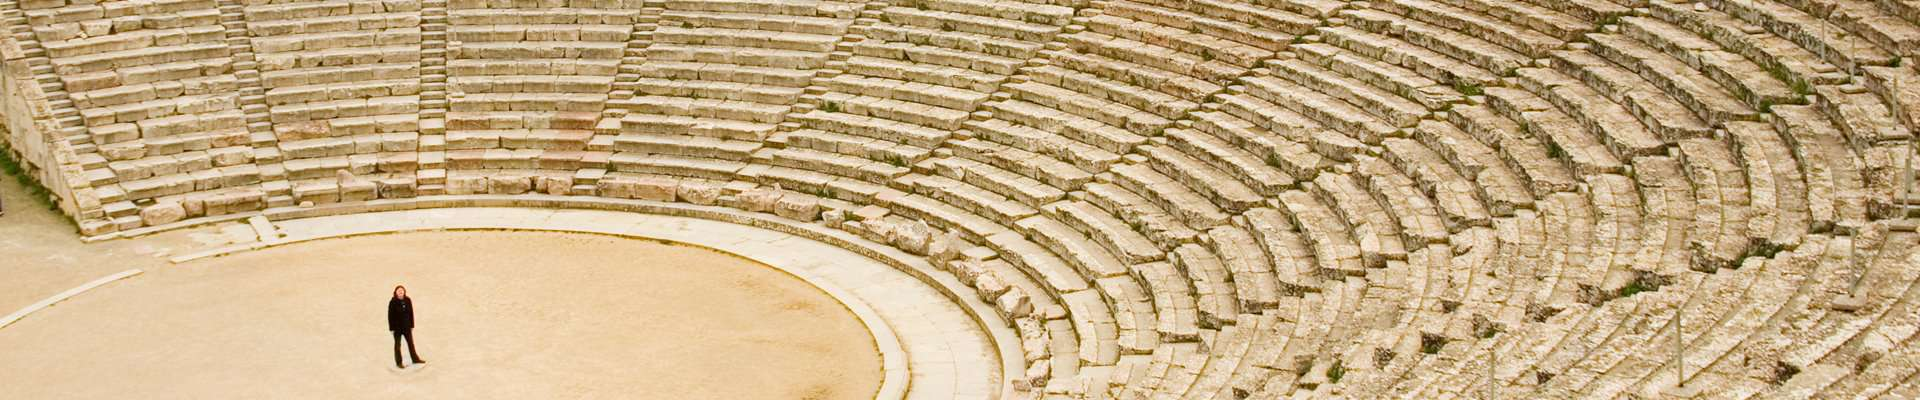 A person stands in the arena of the ancient theatre at Epidaurus, Peloponnese.